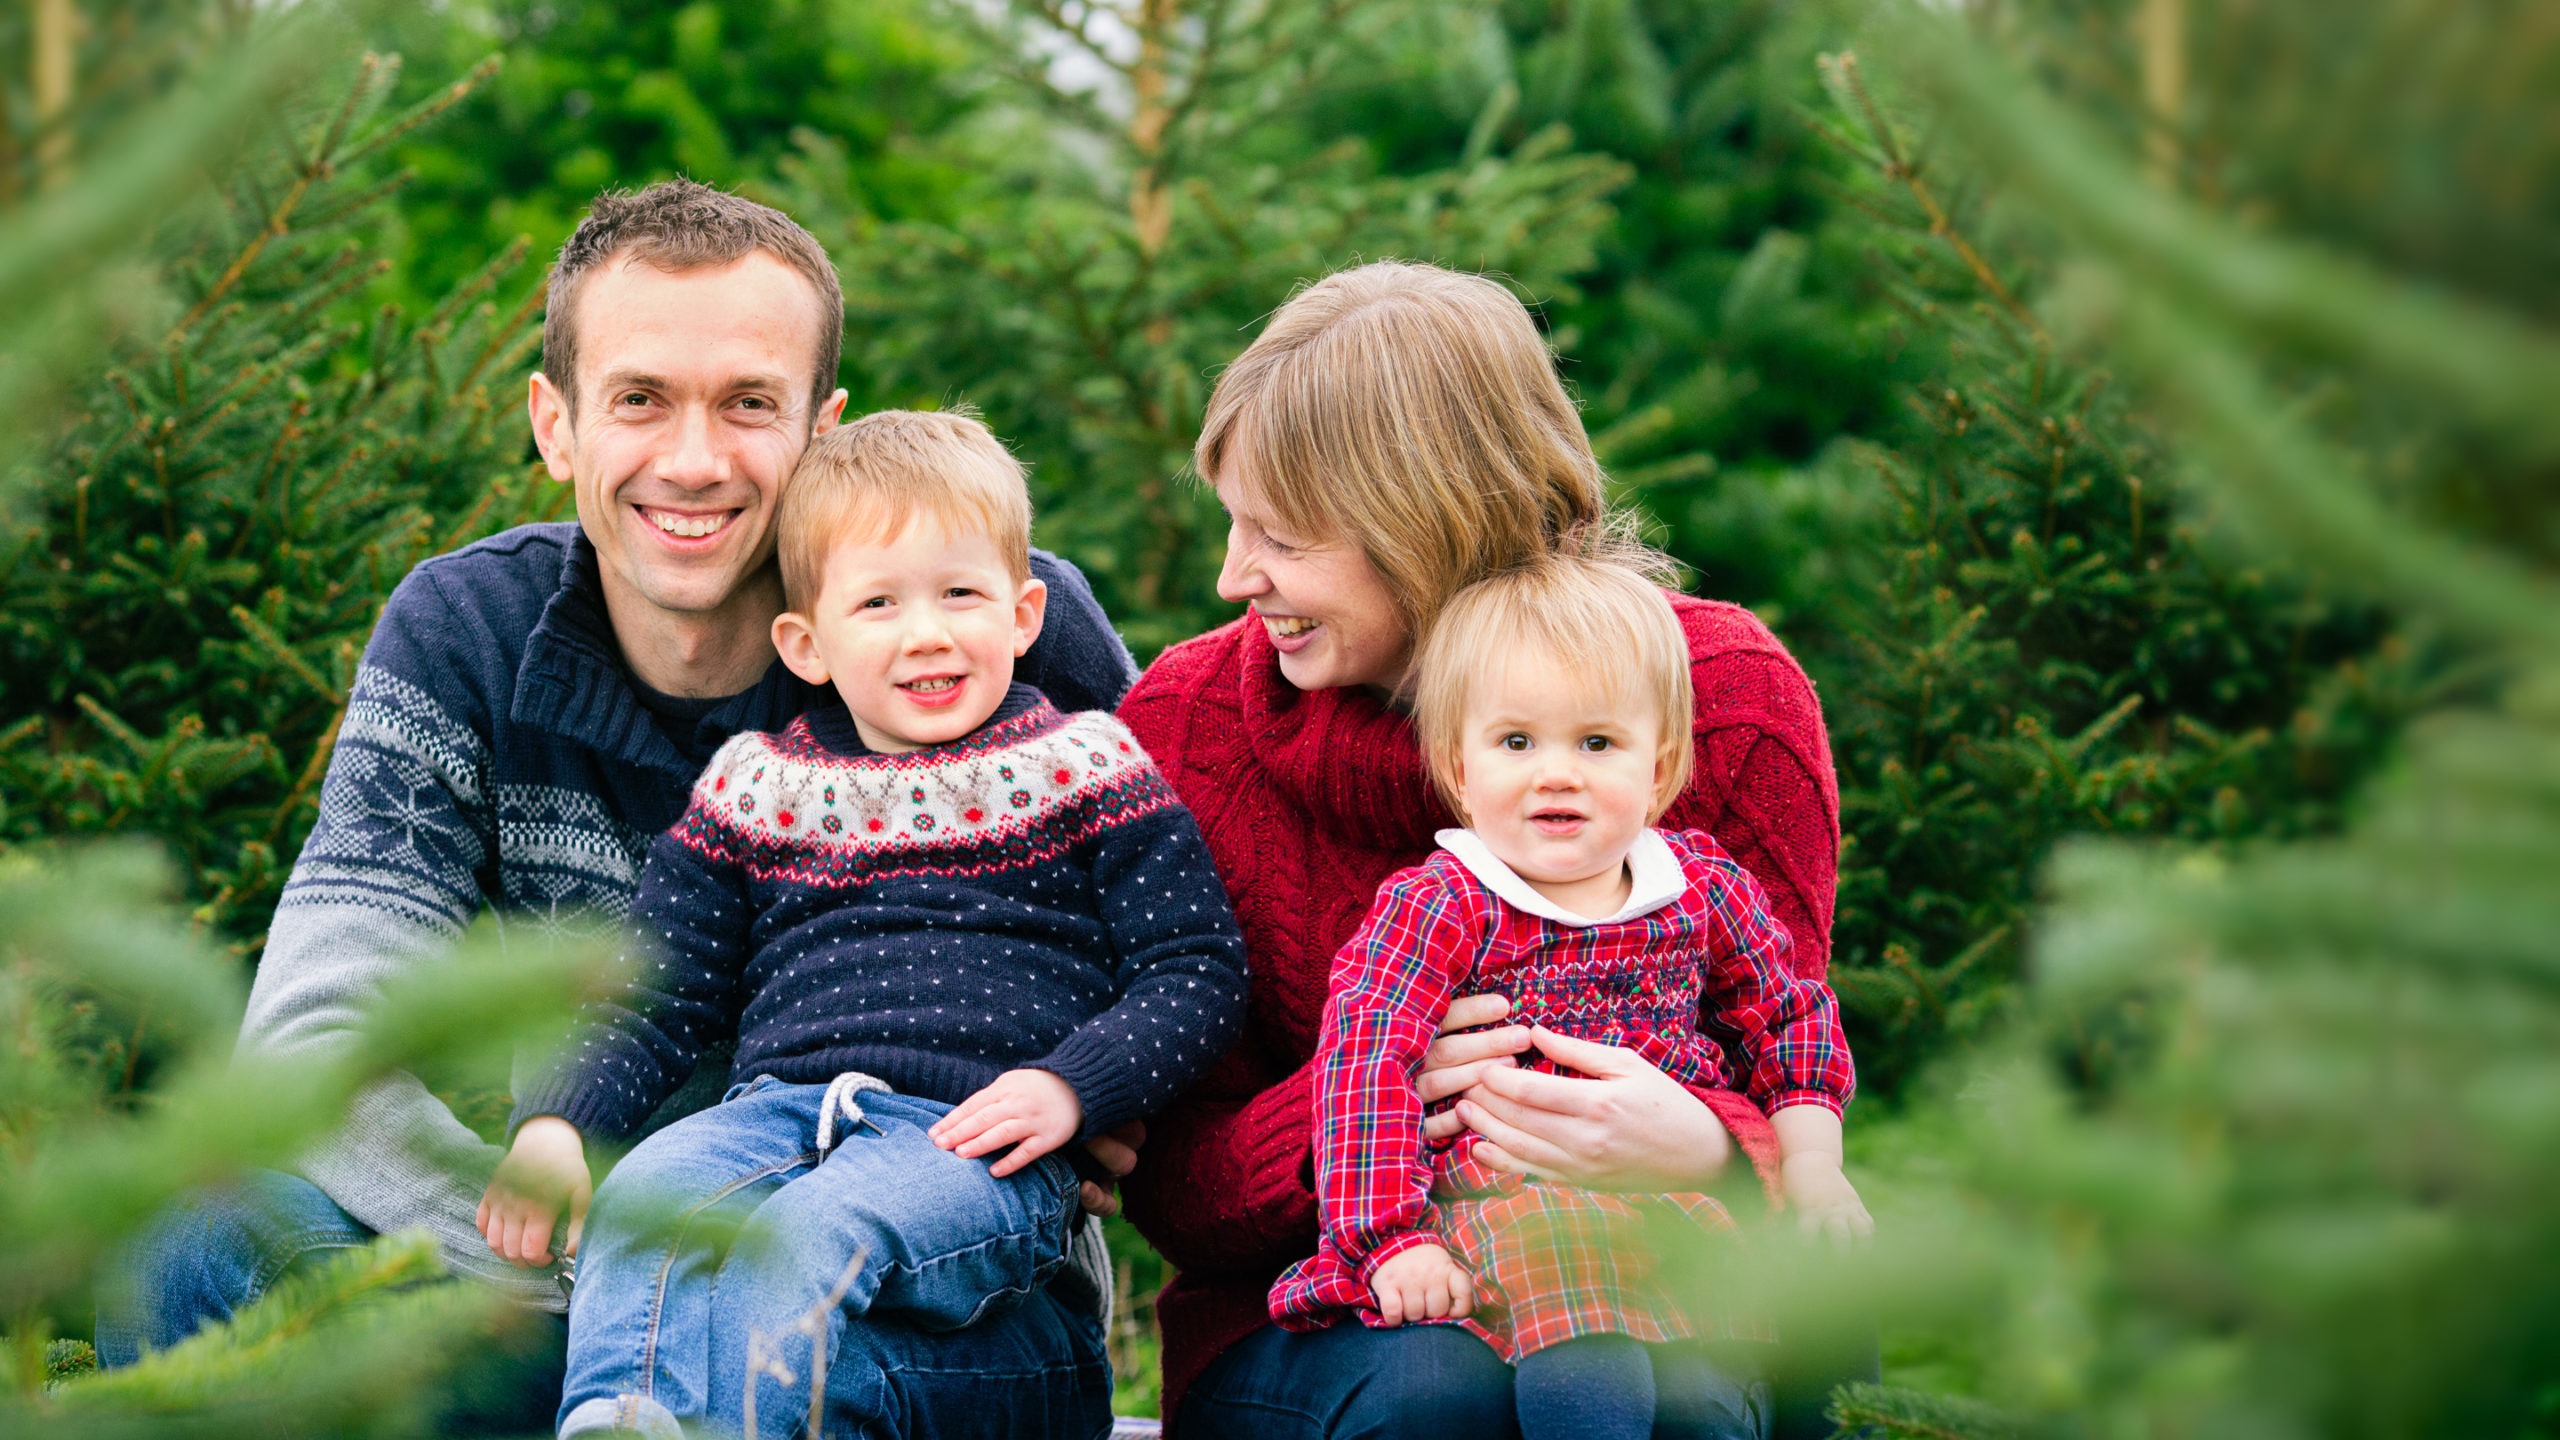 Christmas Tree Farm photoshoot experience 2021 in the Cotswolds and Warwickshire